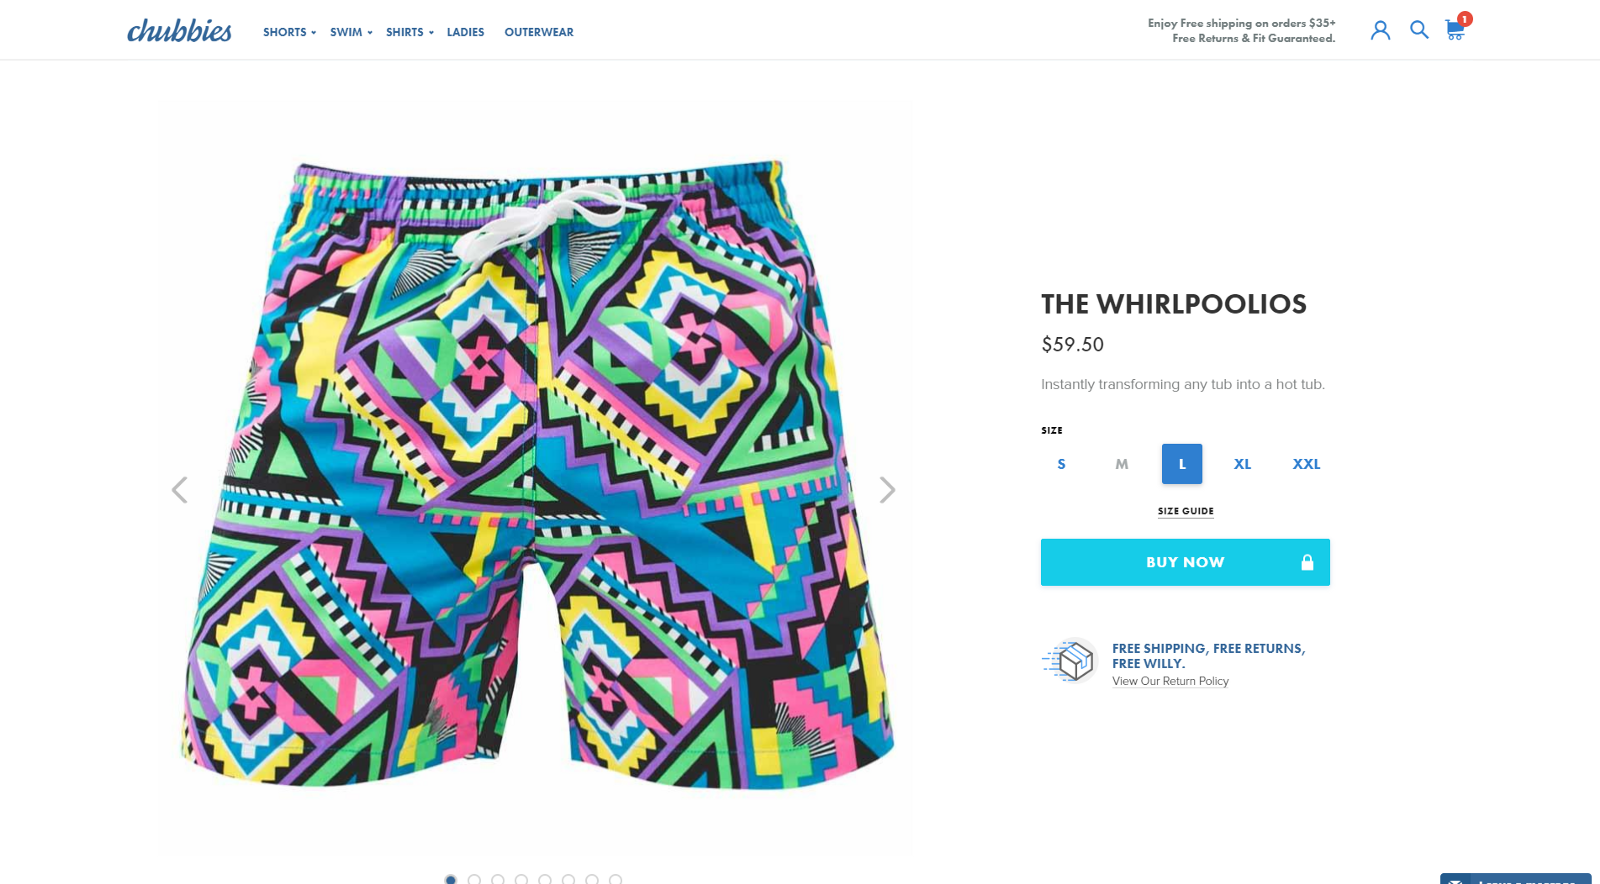 1a6f4fda8d UX Style Icons: 15 of the Best Fashion Retail Websites in the World Right  Now